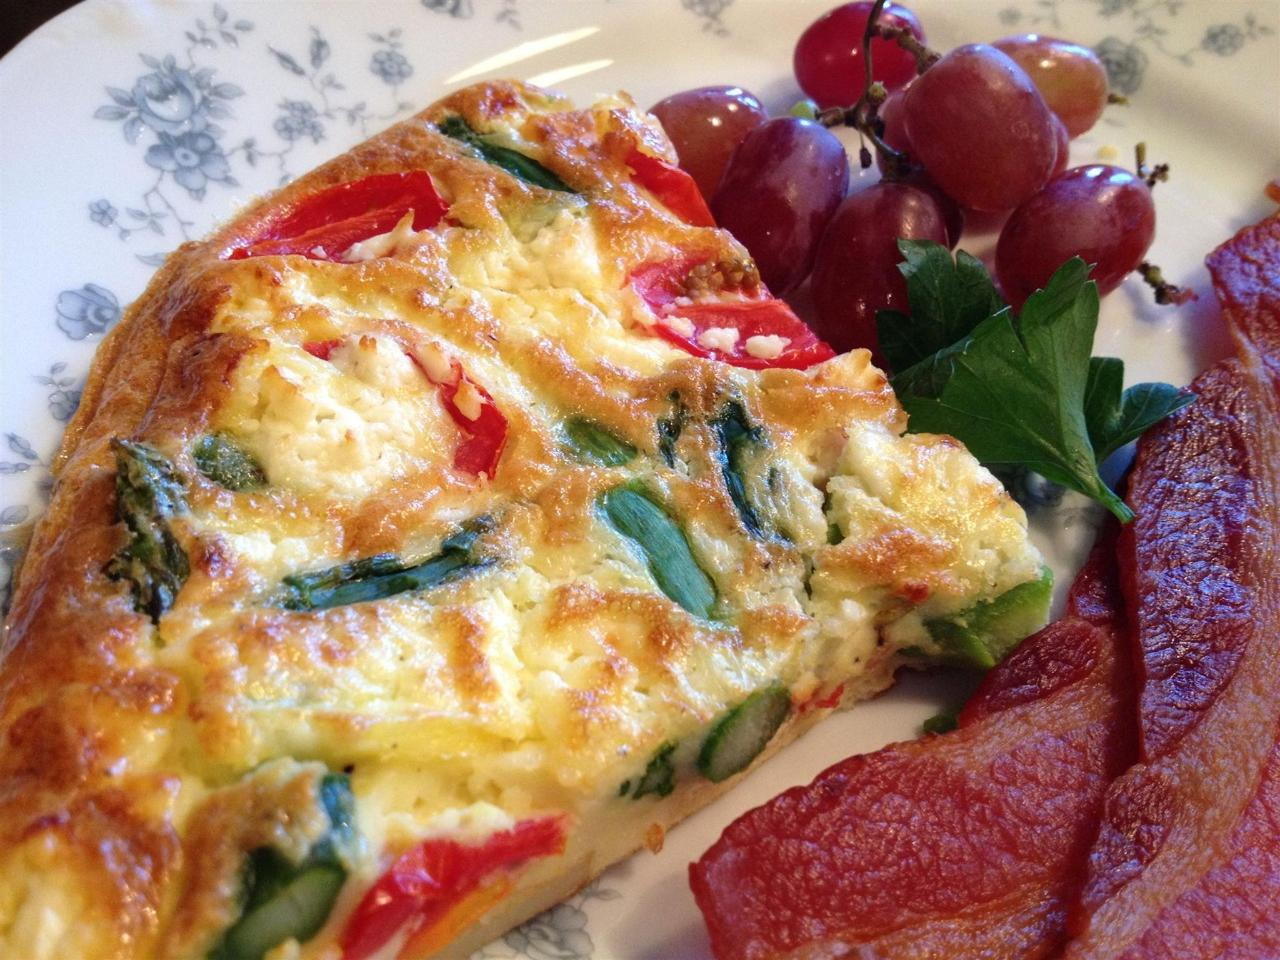 Tomato, Basil, Feta Quiche & Applewood Smoked Bacon